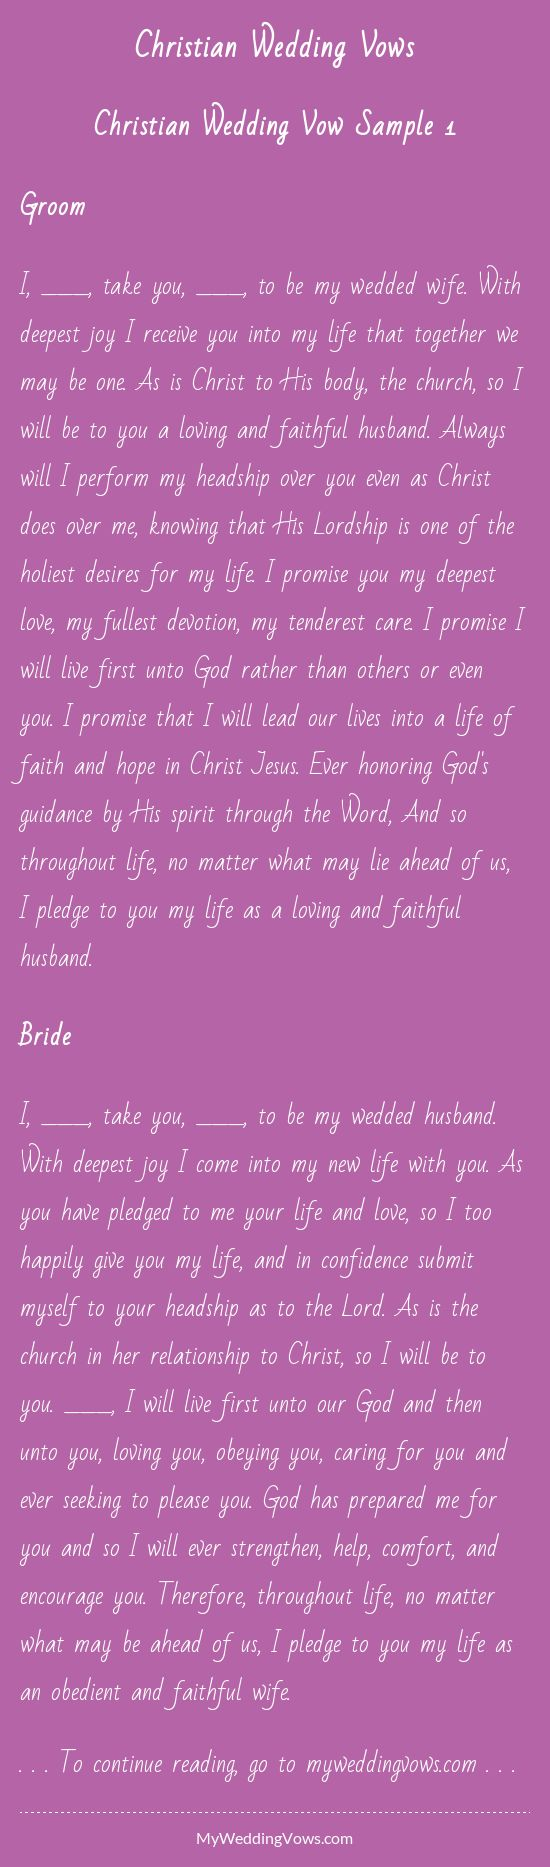 Christian Wedding Vow Sample 1 Groom I, ________, take you, ________, to be my wedded wife. With deepest joy I receive you into my life that together we may be one. As is Christ to His body, the church, so I will be to you a loving and faithful...